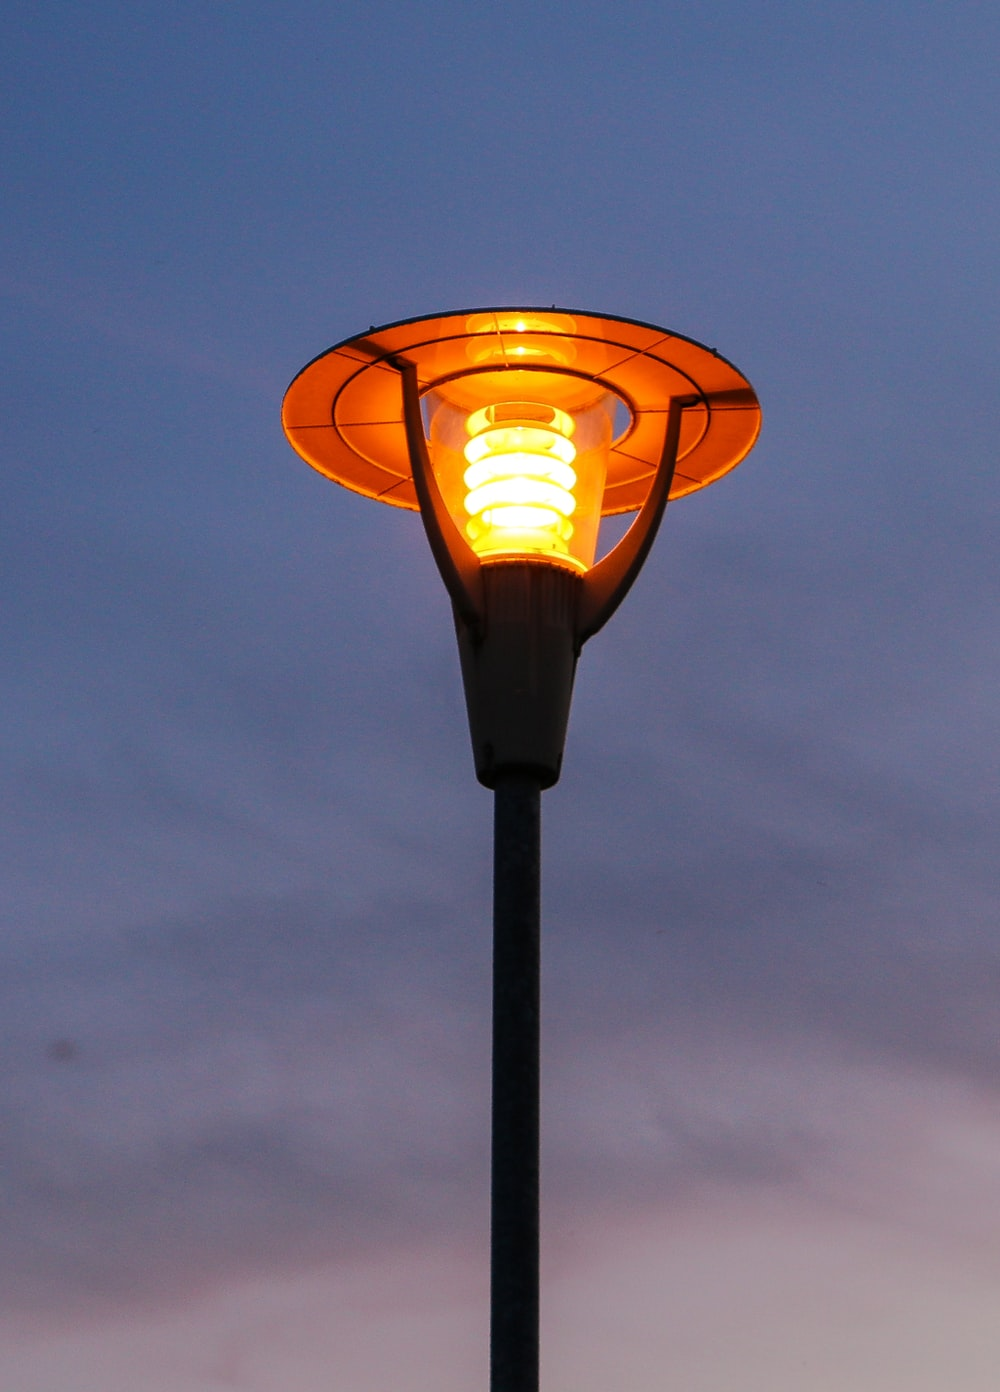 turned-on torch light